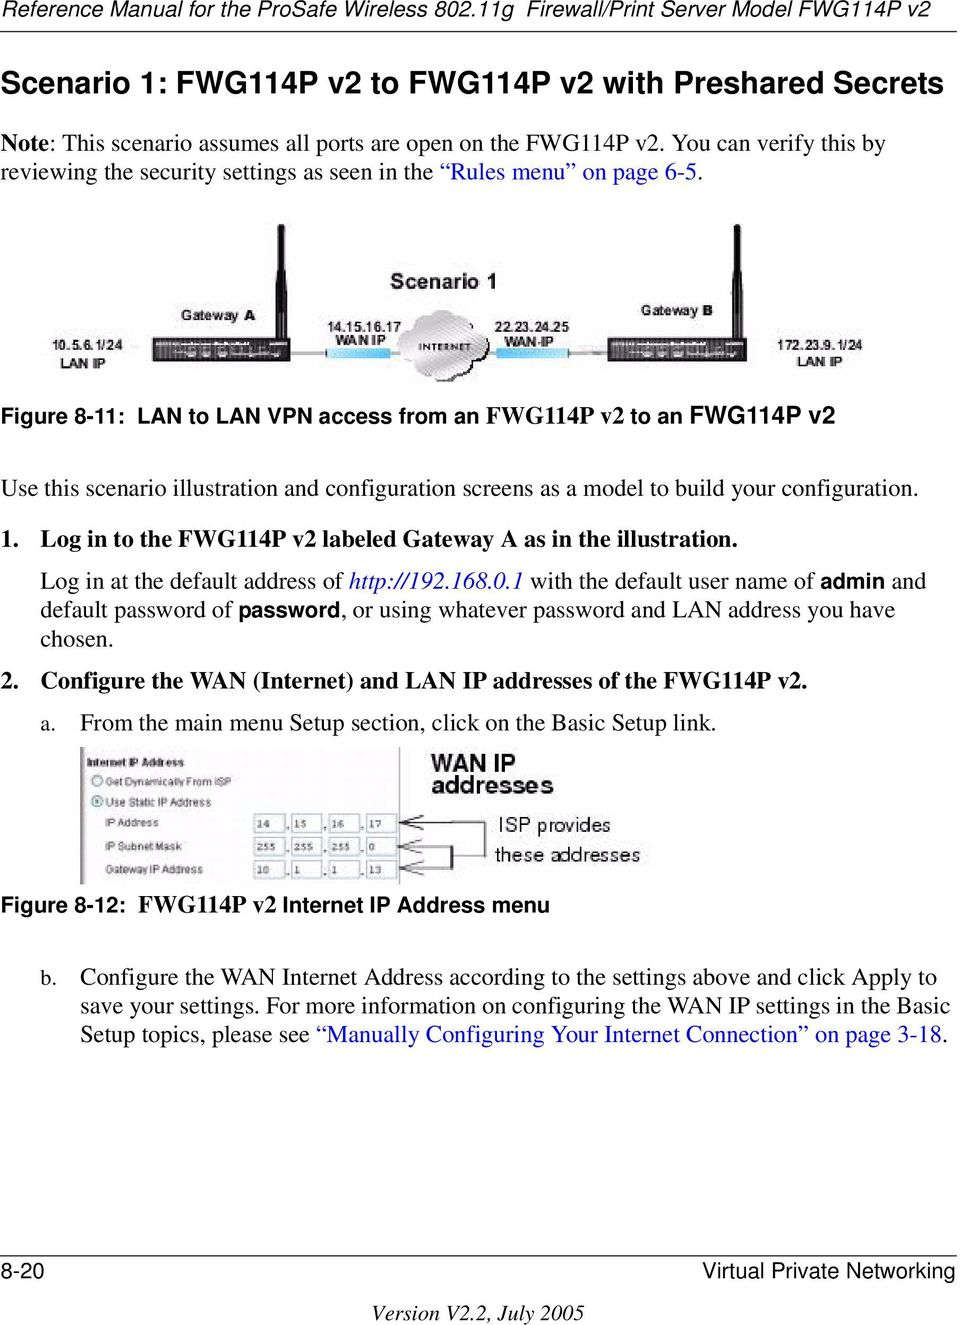 Figure 8-11: LAN to LAN VPN access from an FWG114P v2 to an FWG114P v2 Use this scenario illustration and configuration screens as a model to build your configuration. 1.